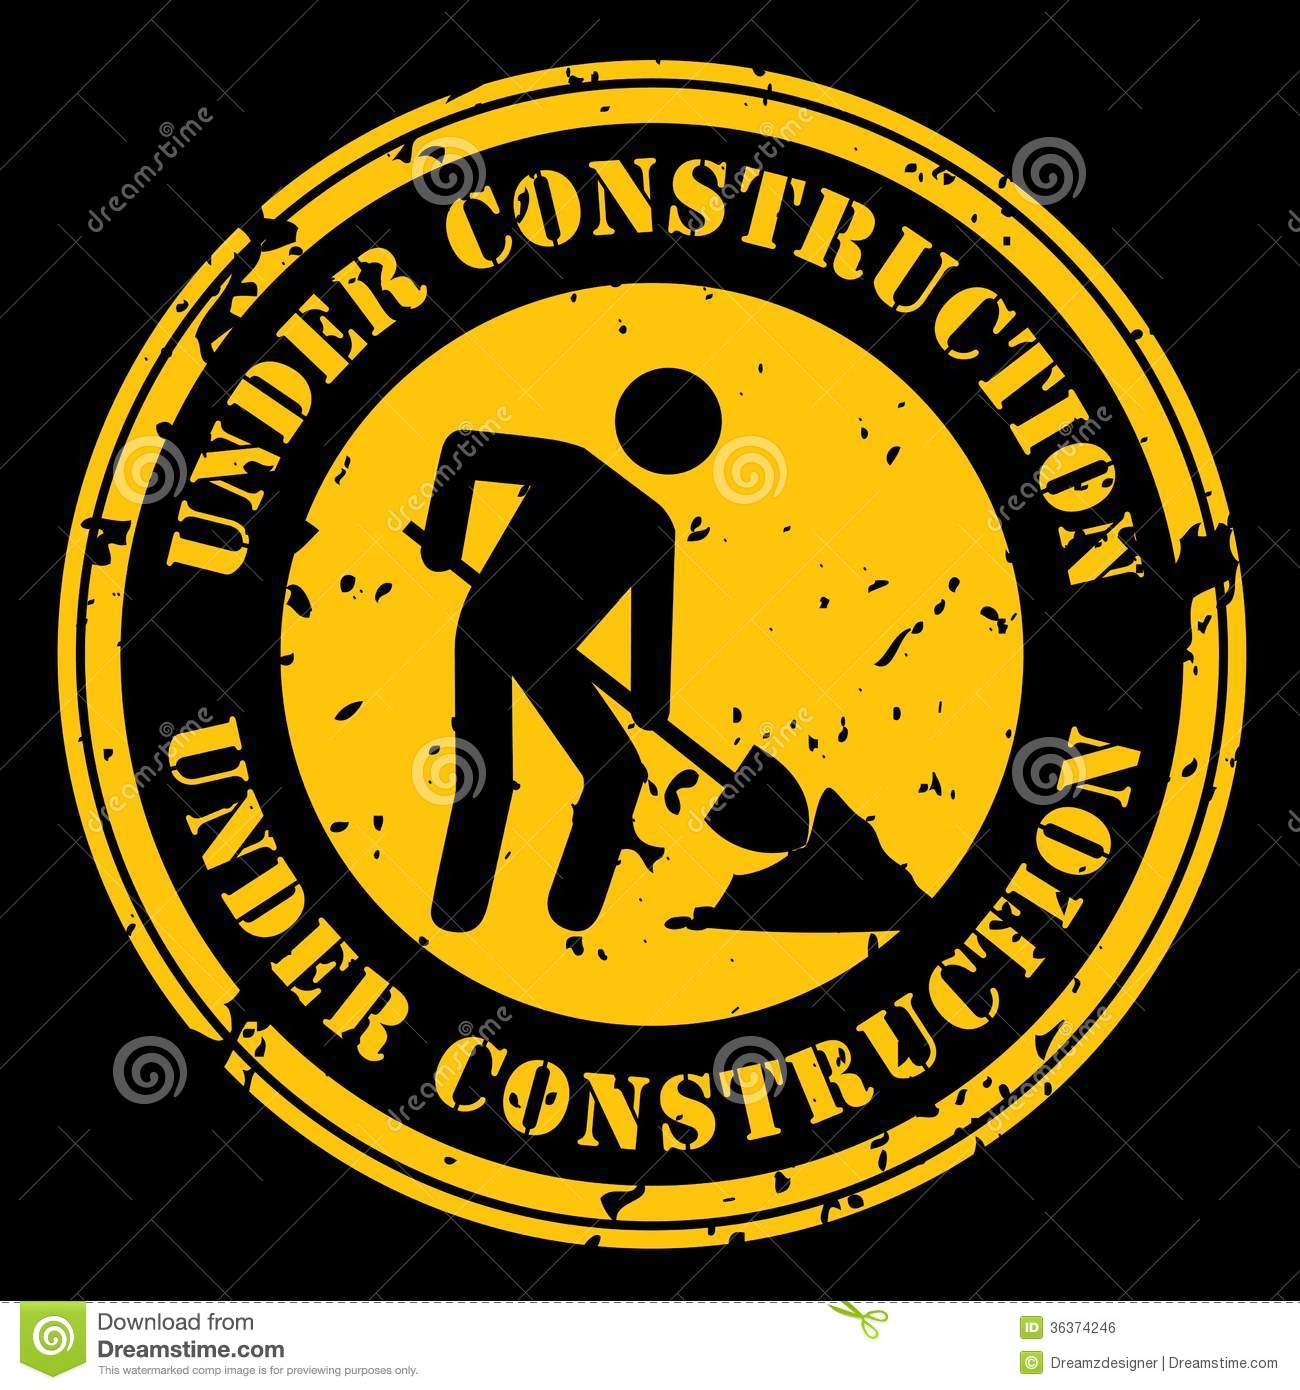 Under Construction Royalty Free Stock Image - Image: 36374246 Under Construction Logo